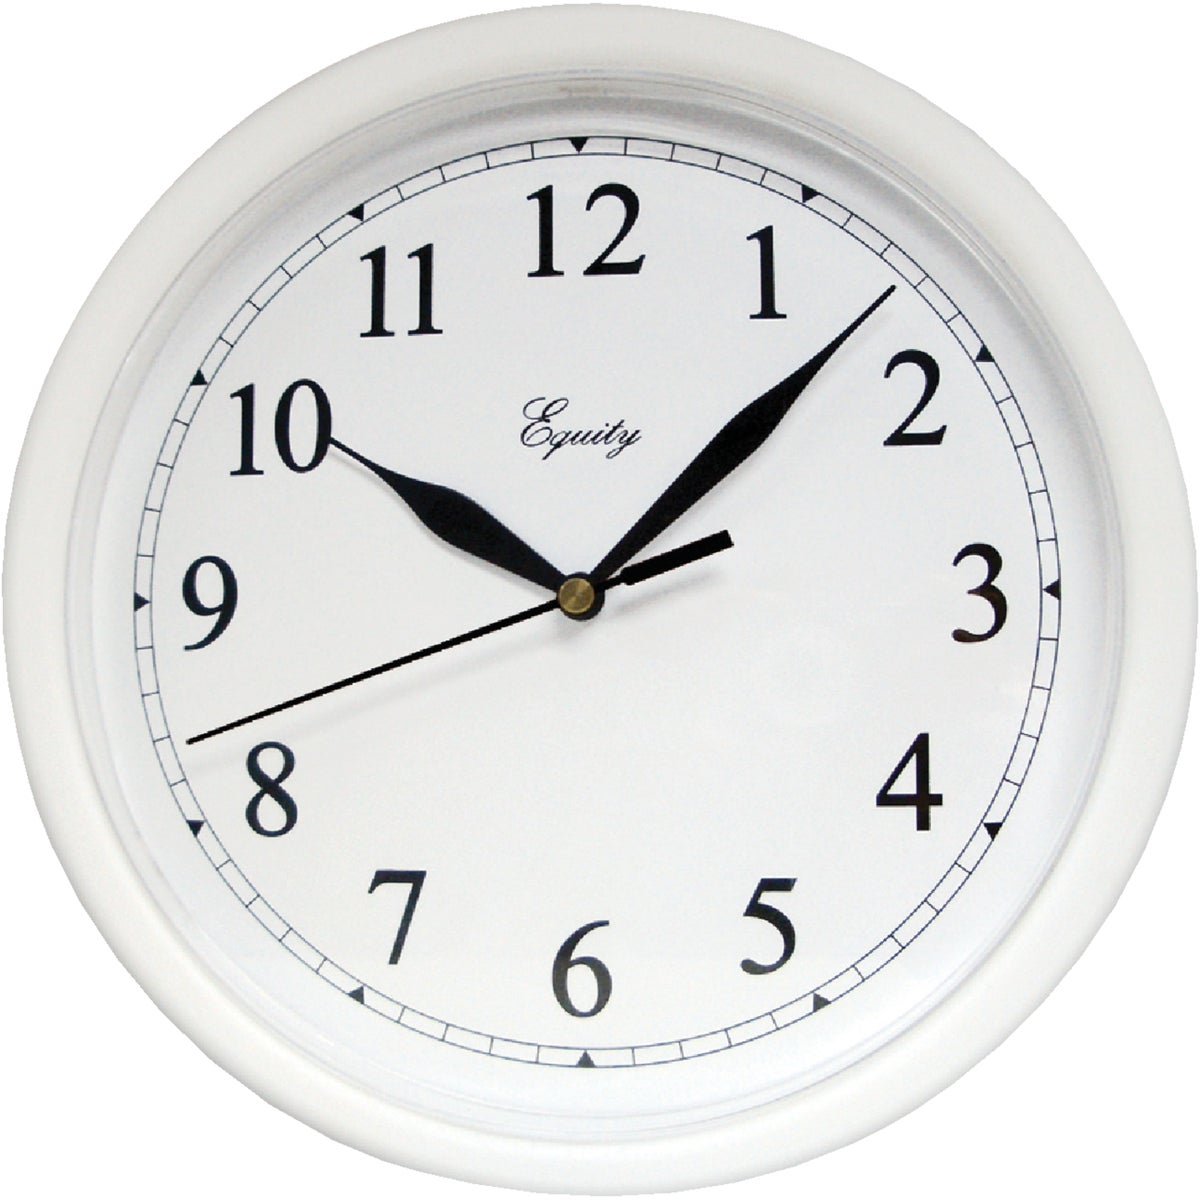 QUARTZ WALL CLOCK - 8101 by Geneva Clock Company